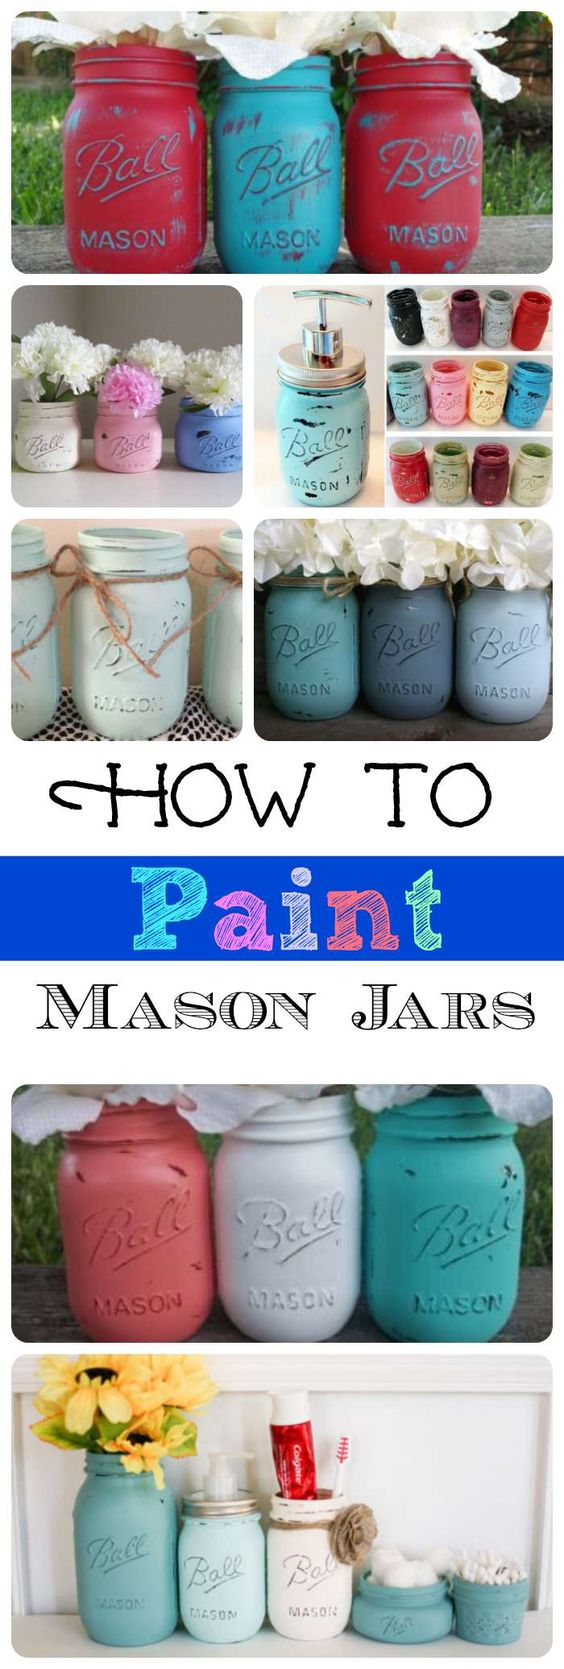 These are adorable mason jar project ideas!  Painting glass is easy!: